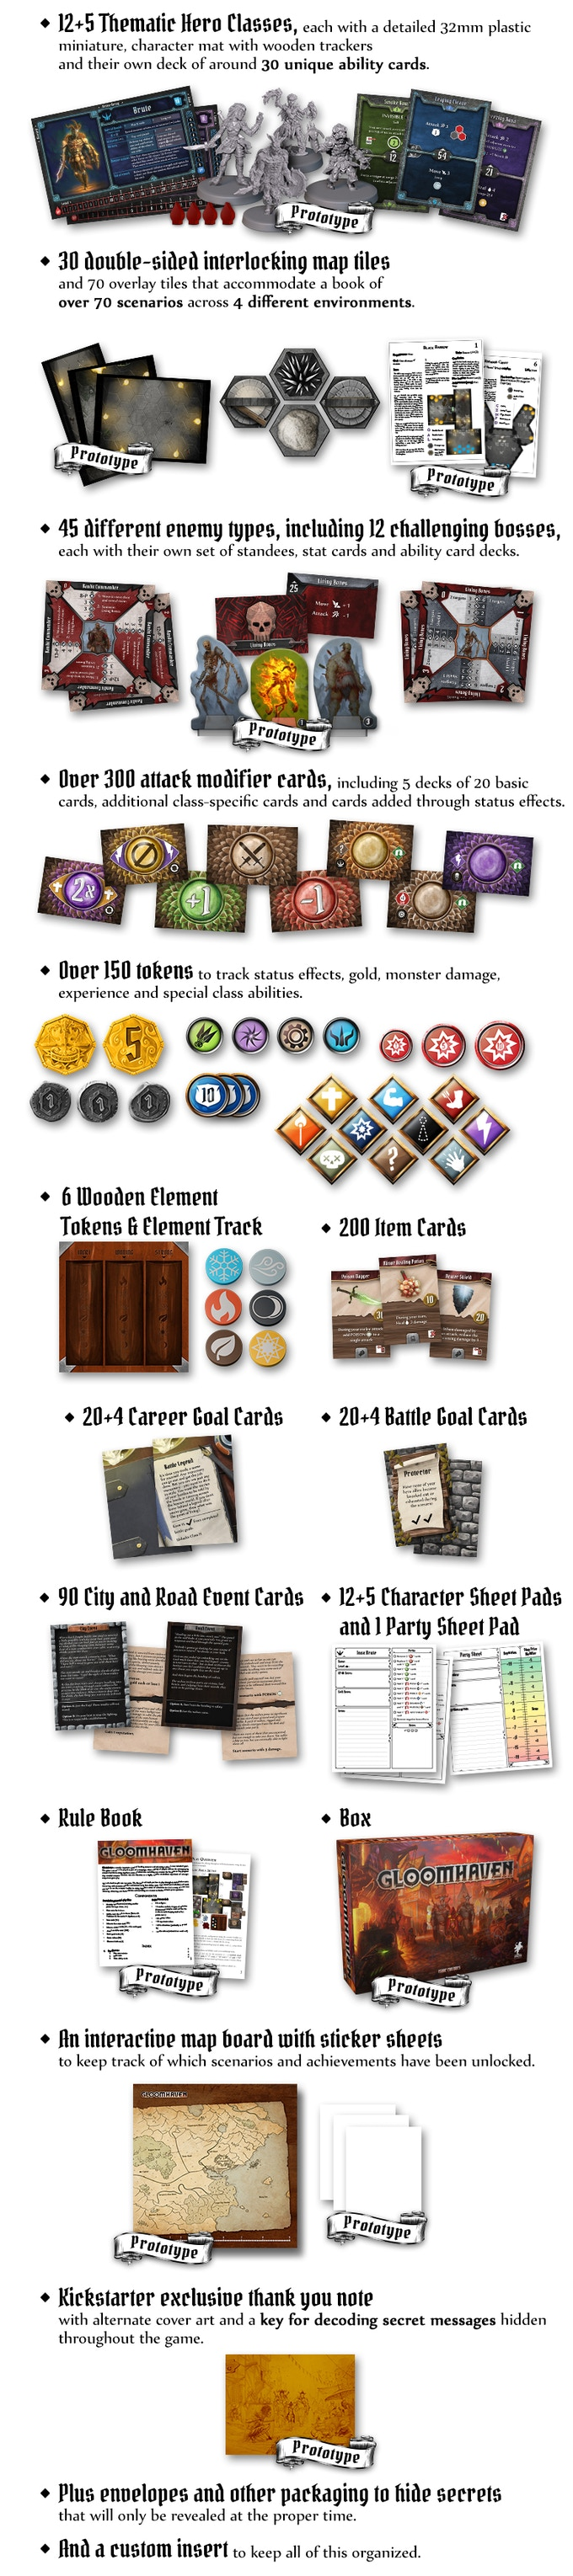 Gloomhaven by Isaac Childres — Kickstarter